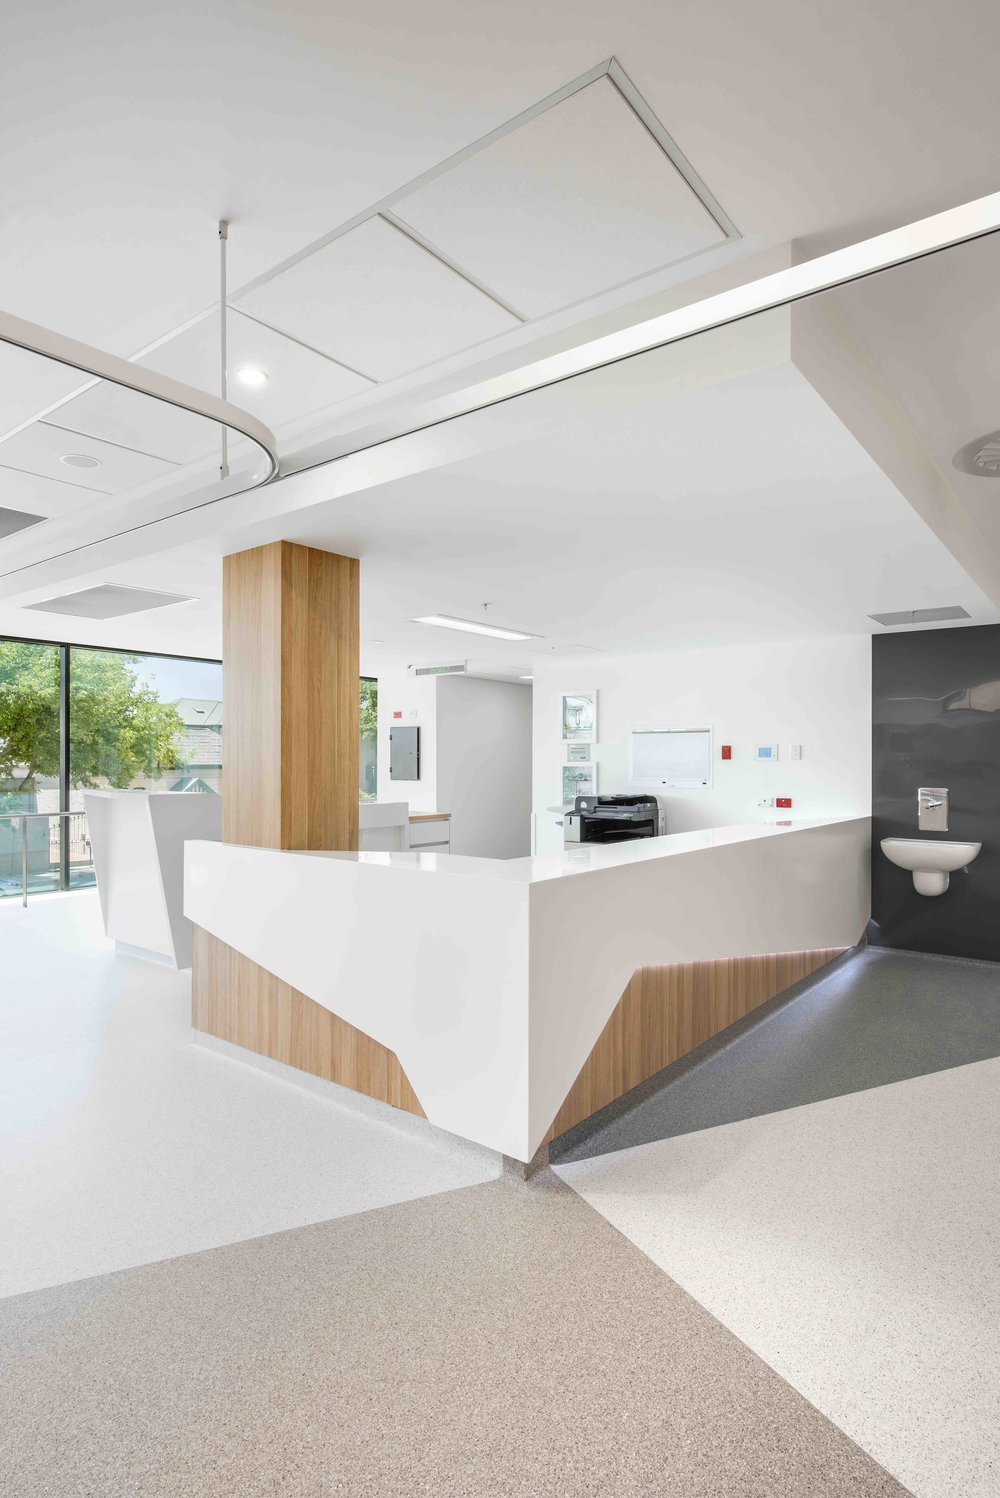 St Andrew's Hospital | ECD   Cohesive design themes integrate colour, floor patterning and joinery with building form and context. Quality materials on the clinical floor balancing warmth, comfort and servicability.